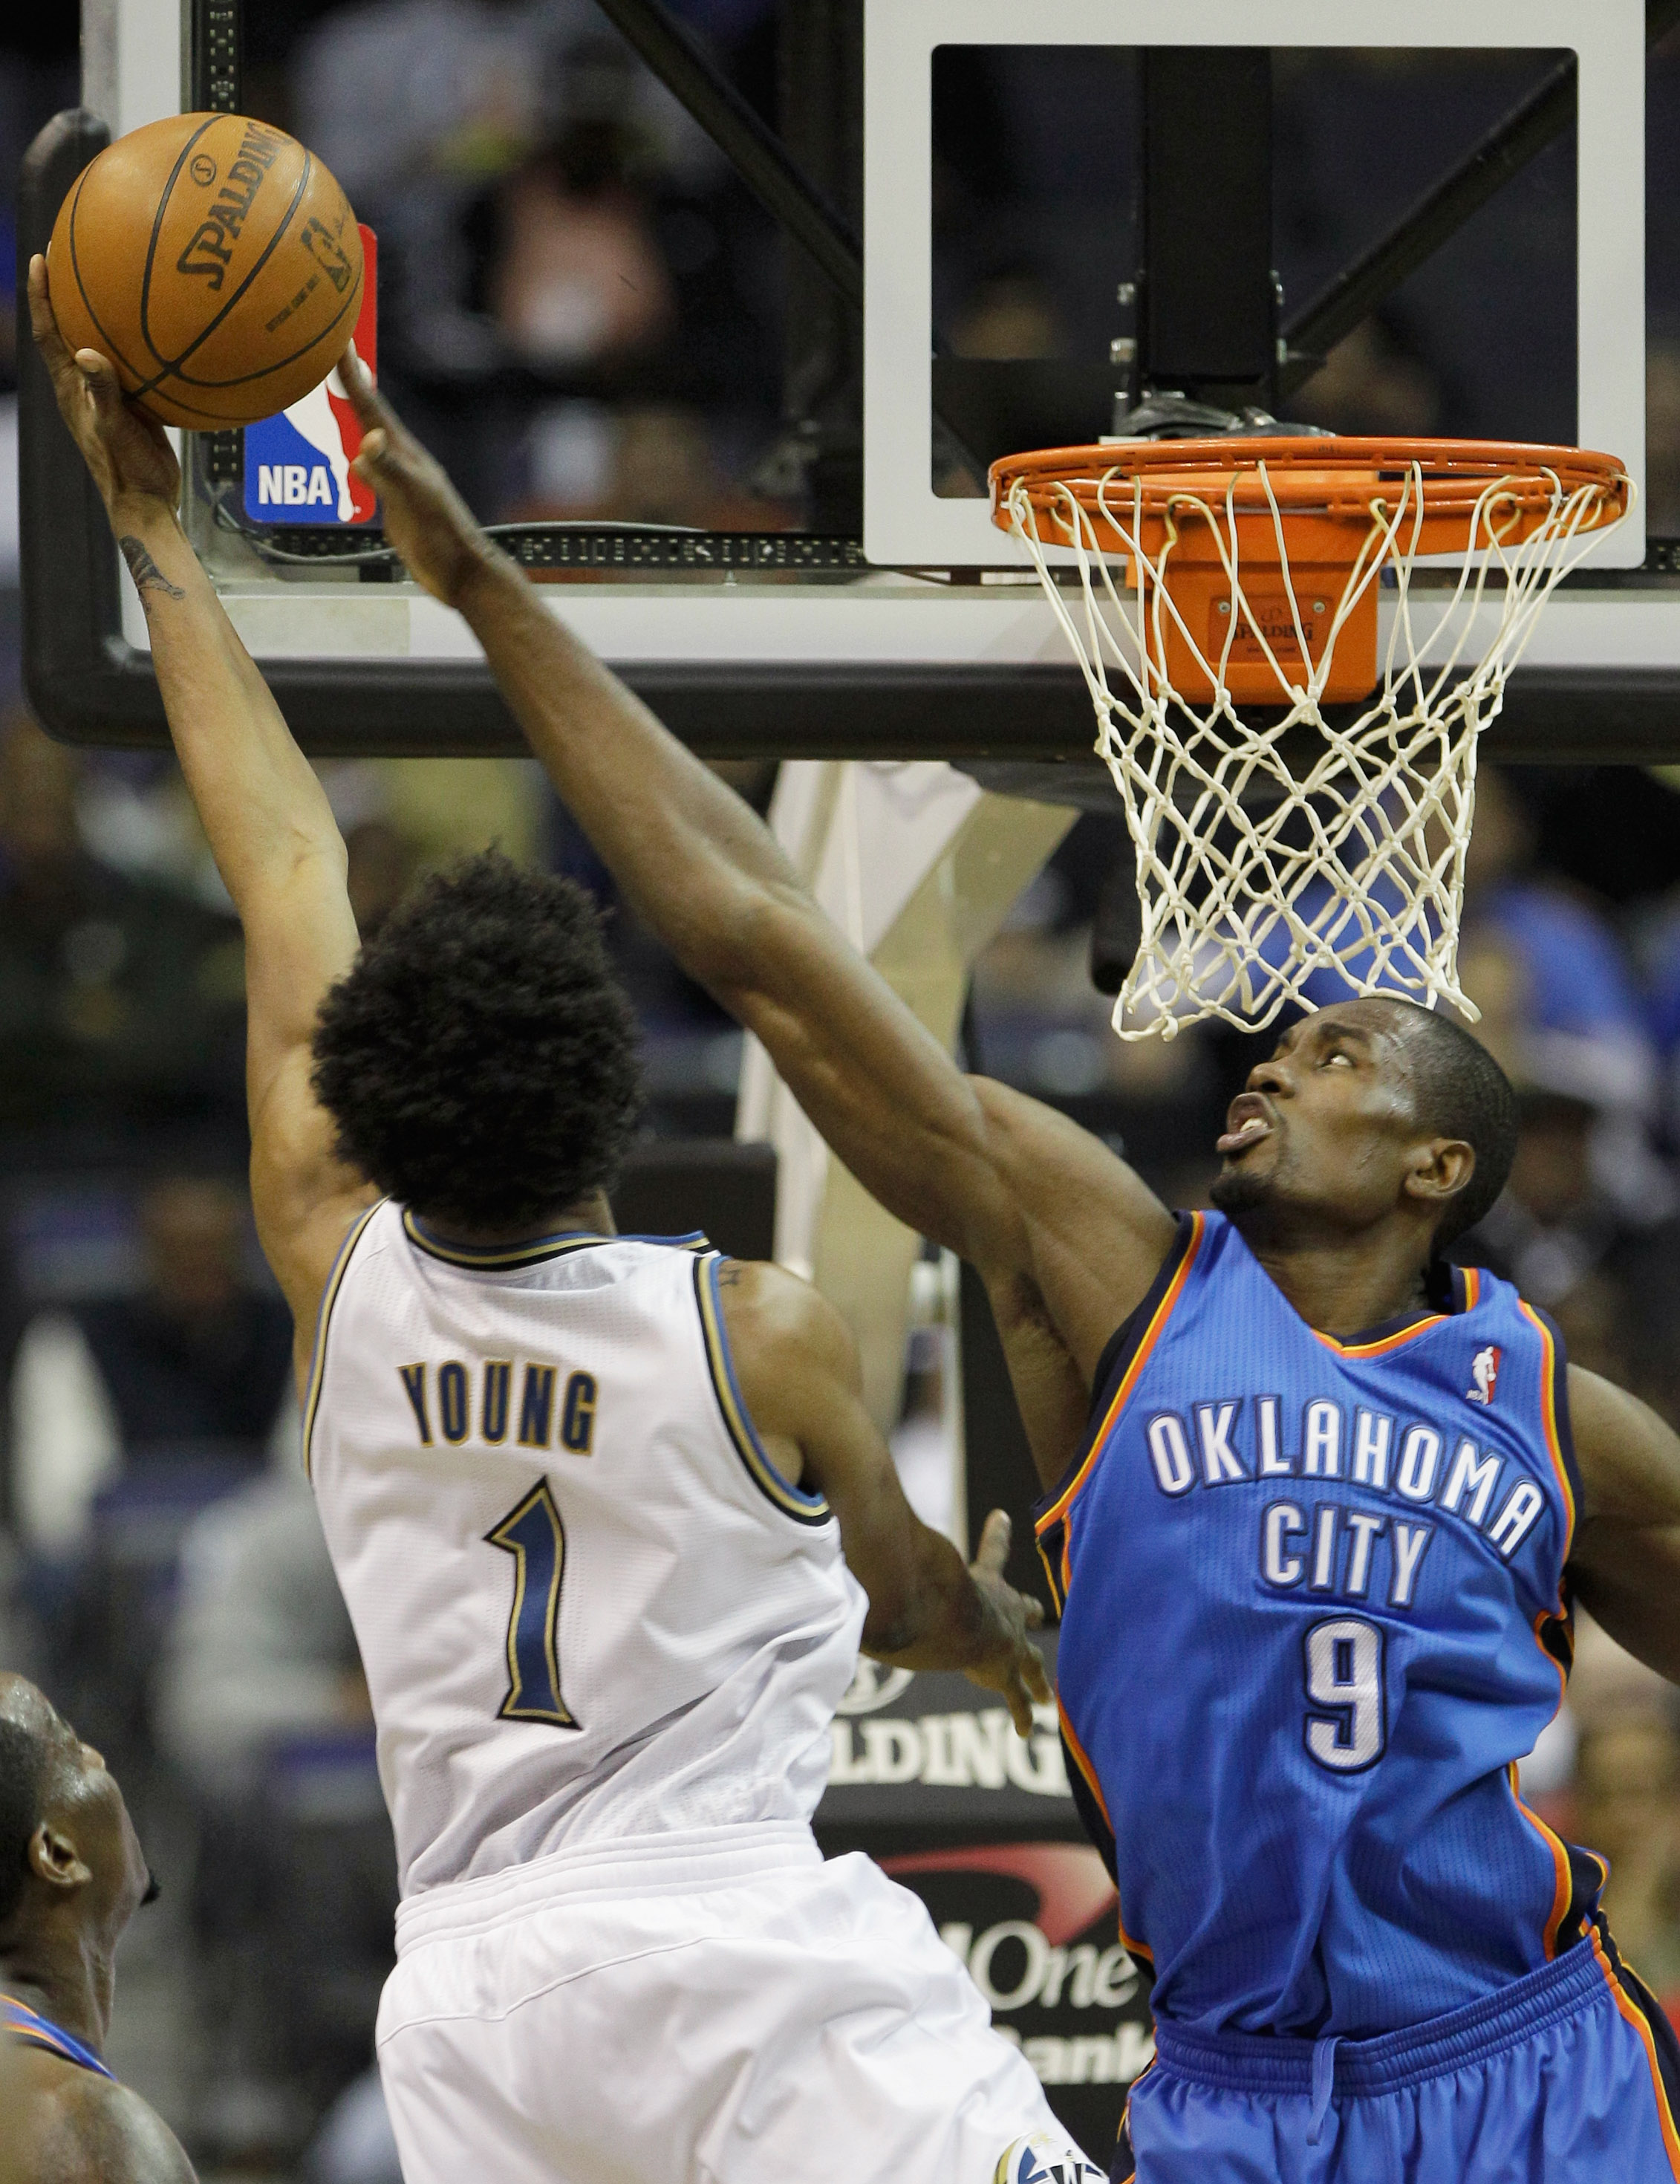 WASHINGTON, DC - MARCH 14: Serge Ibaka #9 of the Oklahoma City Thunder blocks a shot by Nick Young #1 of the Washington Wizards during the first half at the Verizon Center on March 14, 2011 in Washington, DC. NOTE TO USER: User expressly acknowledges and